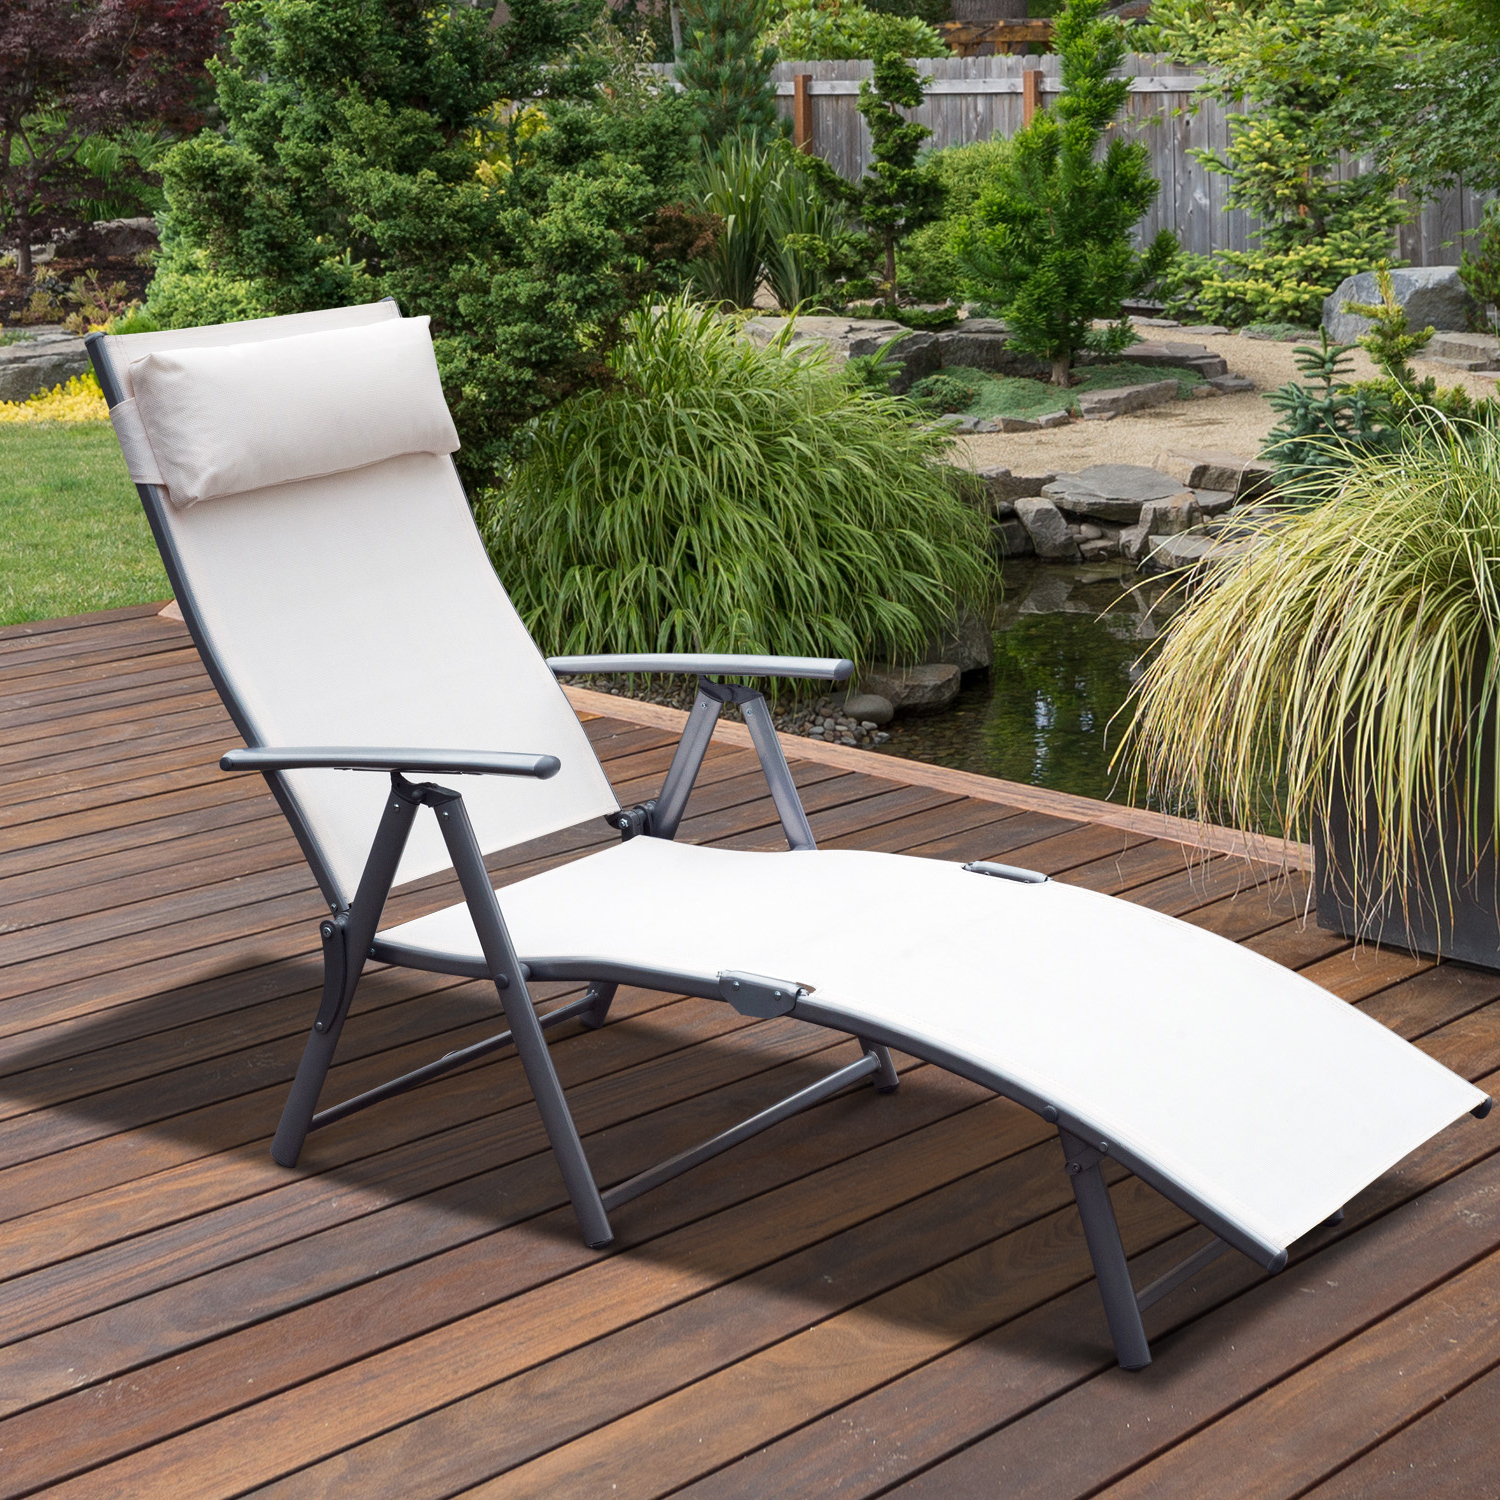 Favorite Details About Outsunny Sling Fabric Patio Reclining Chaise Lounge Garden Furniture Folding Intended For Steel Sling Fabric Outdoor Folding Chaise Lounges (View 24 of 25)